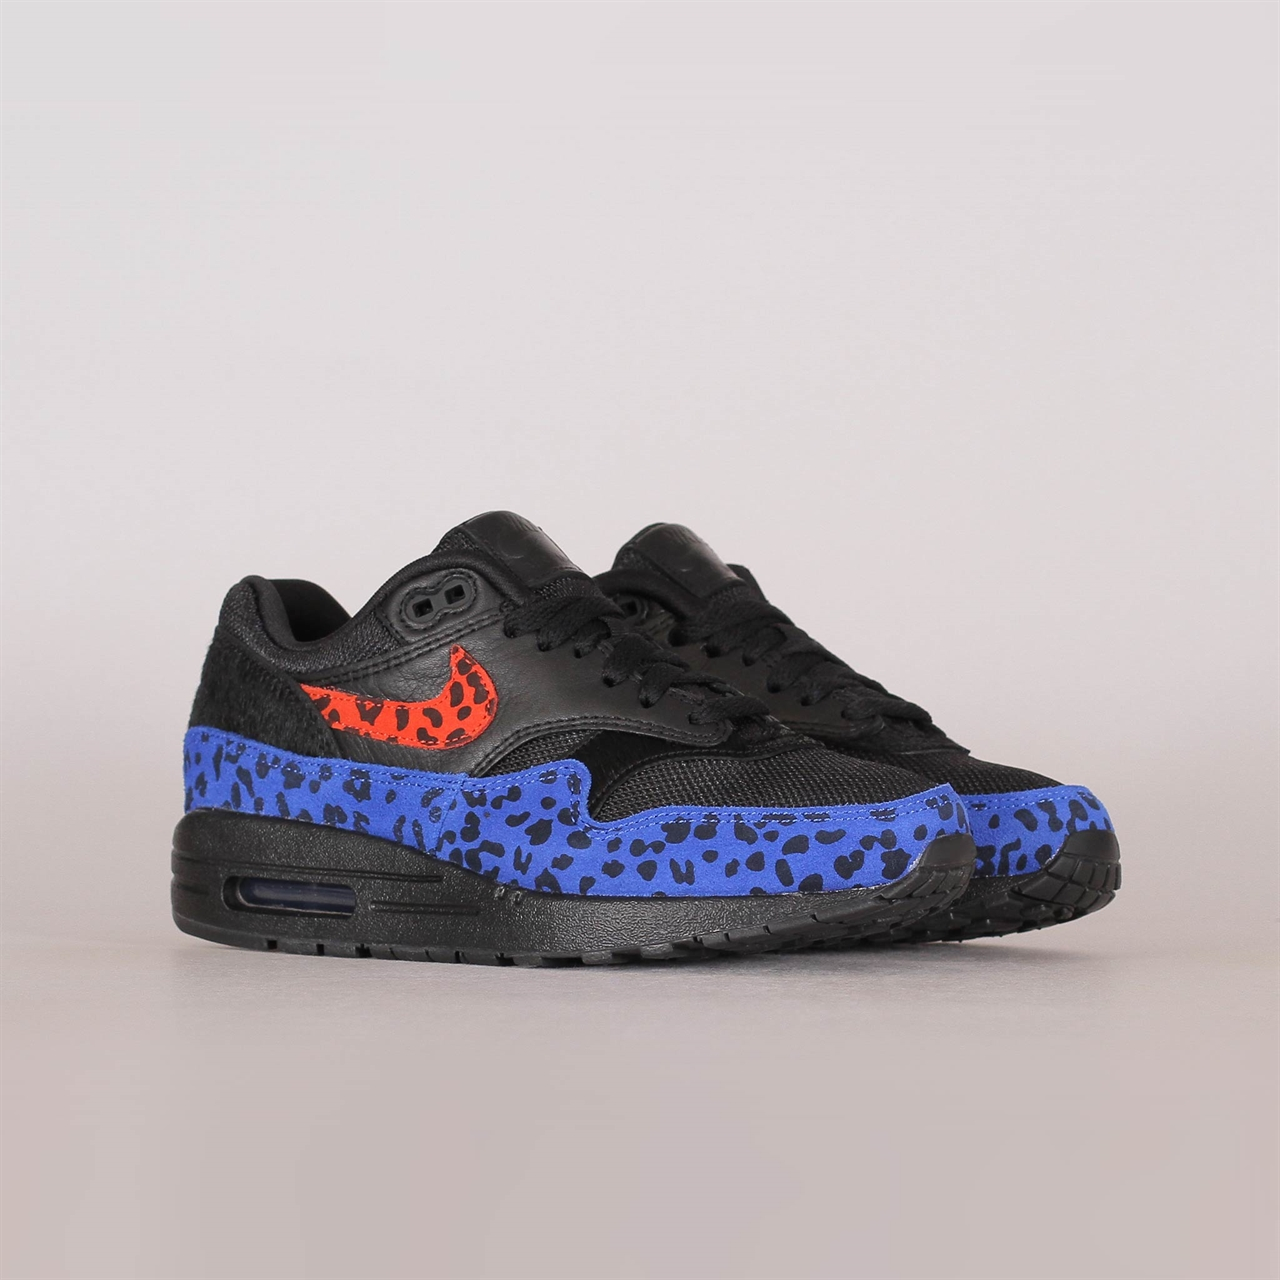 pretty nice 44cb4 2bc6a Womens Air Max 1 Premium Black Leopard (BV1977-001)